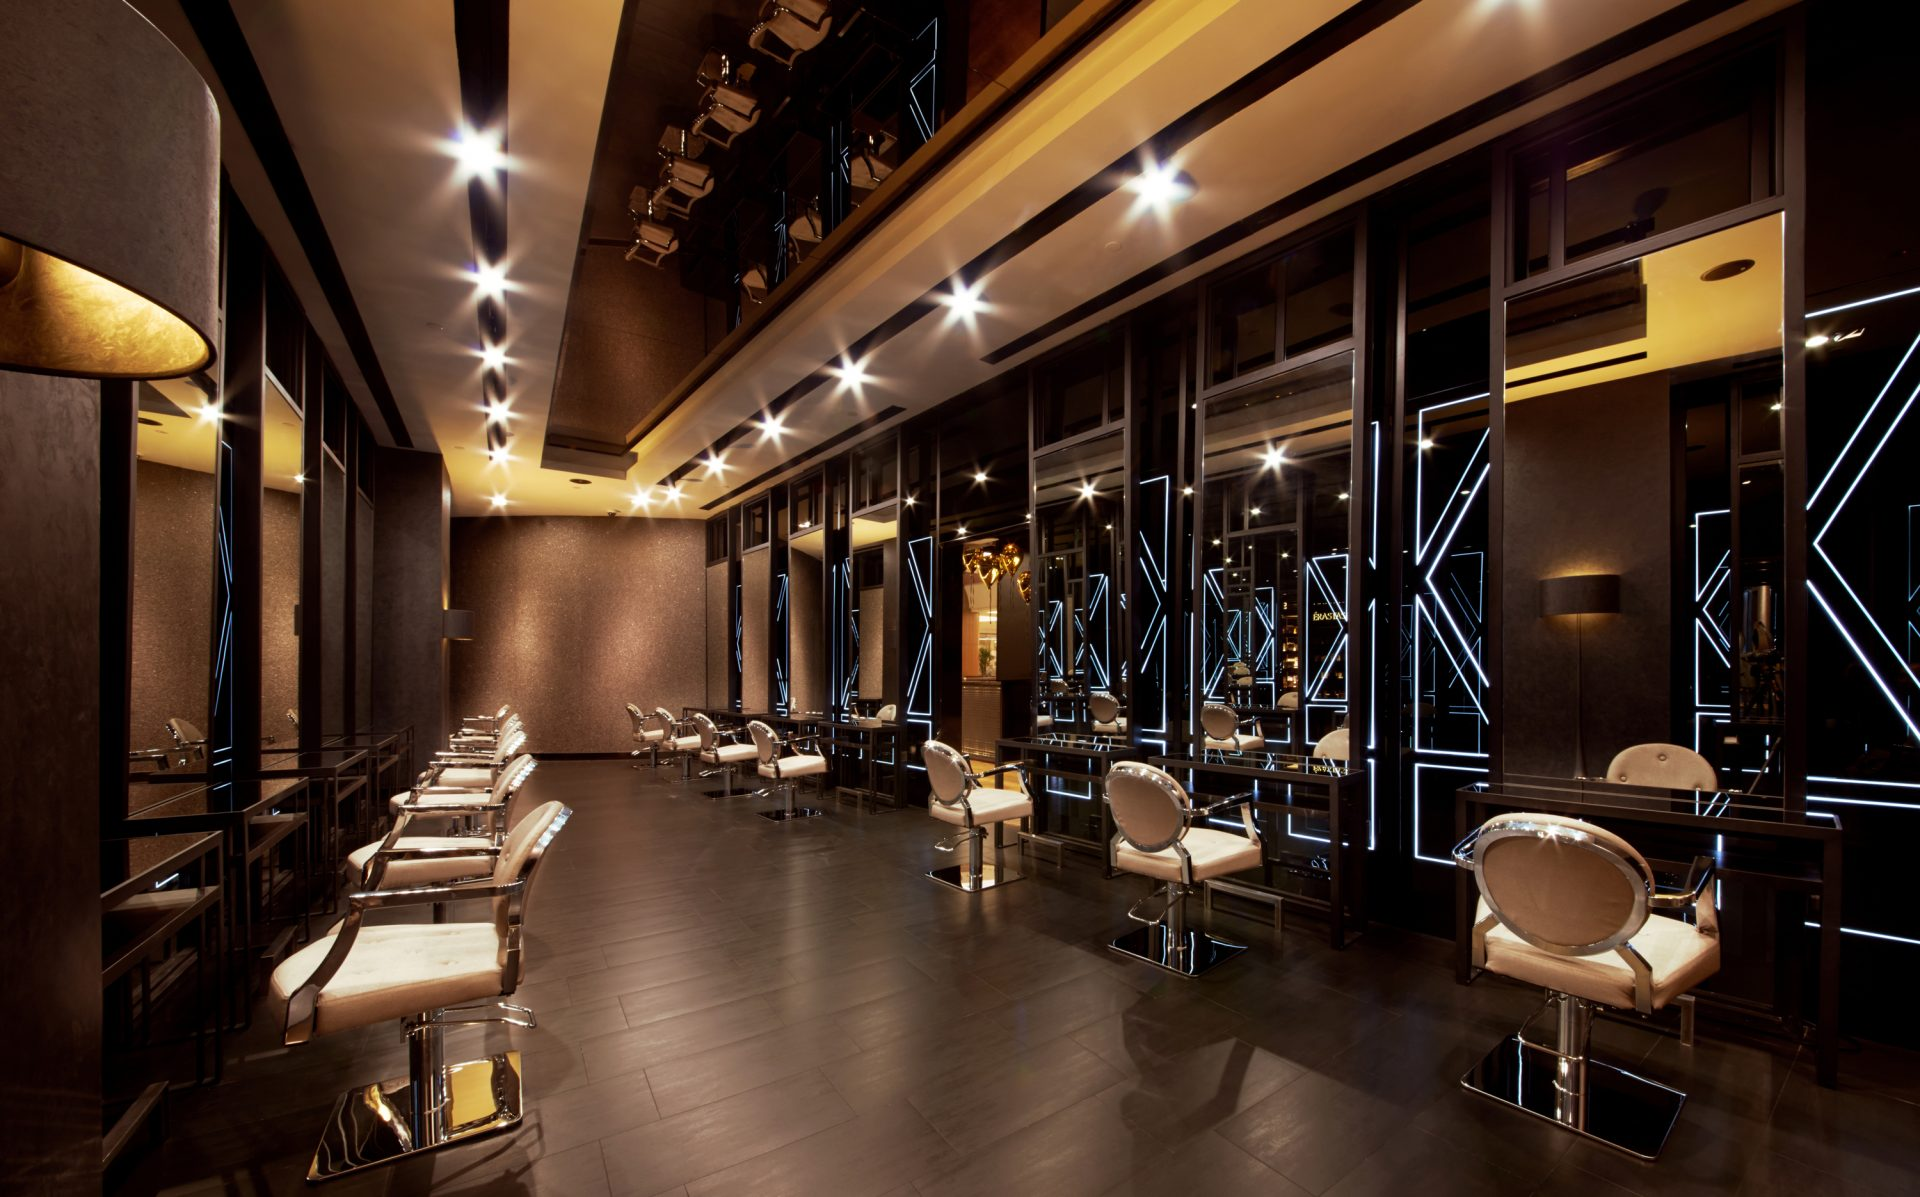 1920 hair salon design all home interior ideastalking tresses 5 best hair salons in kl for your makeoverbeauty \\u0026 grooming